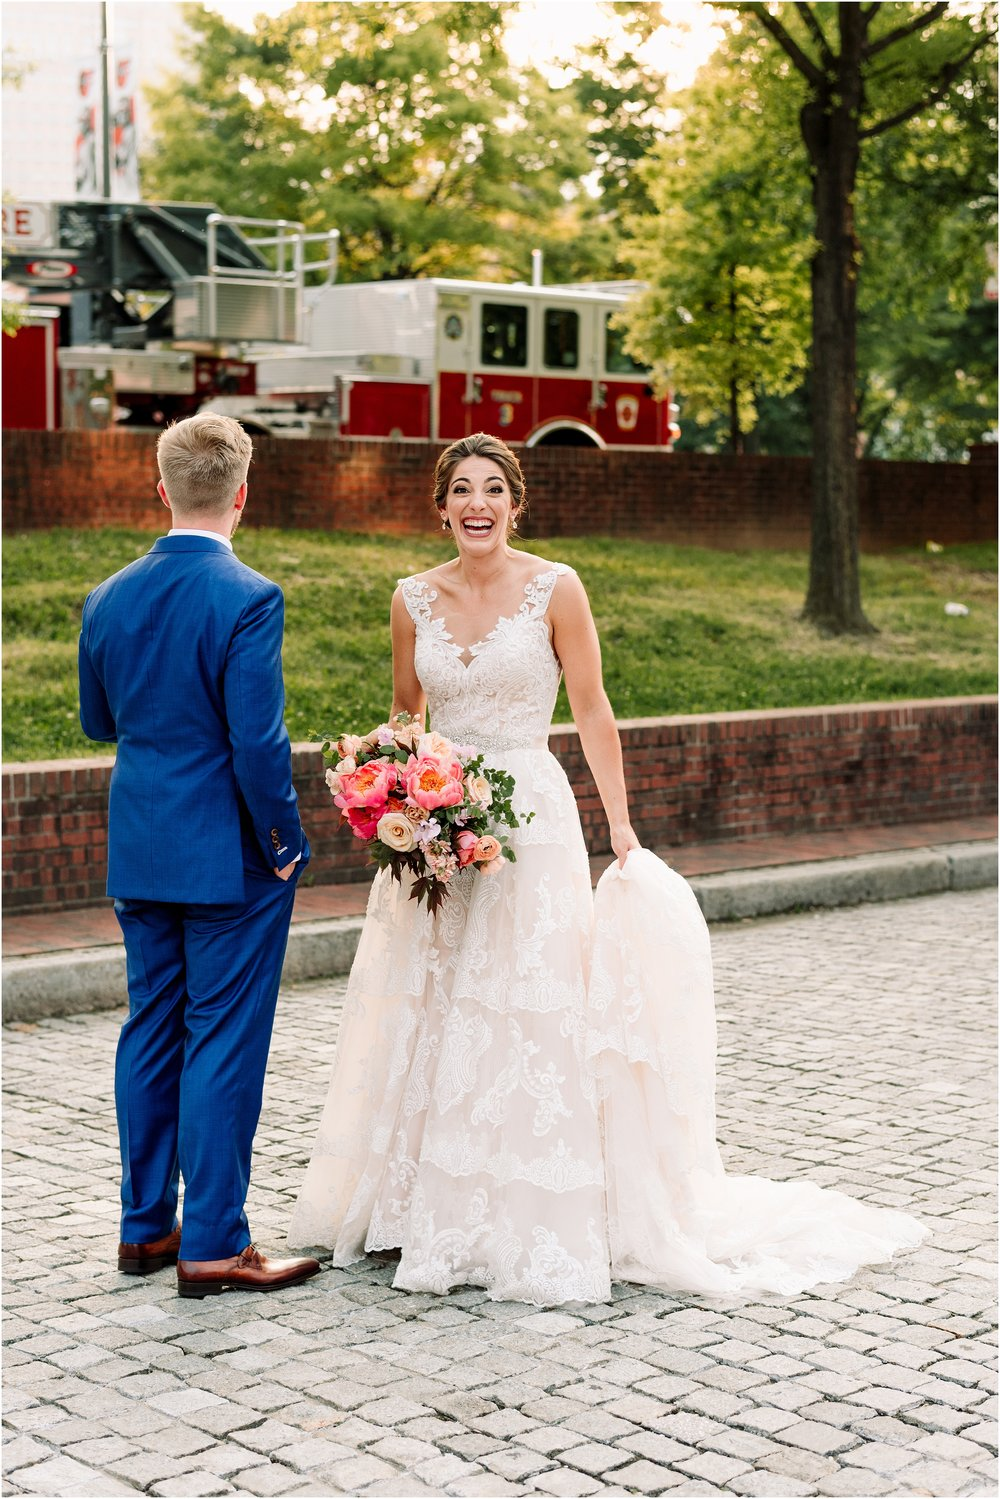 hannah leigh photography 1840s plaza wedding baltimore md_0101.jpg